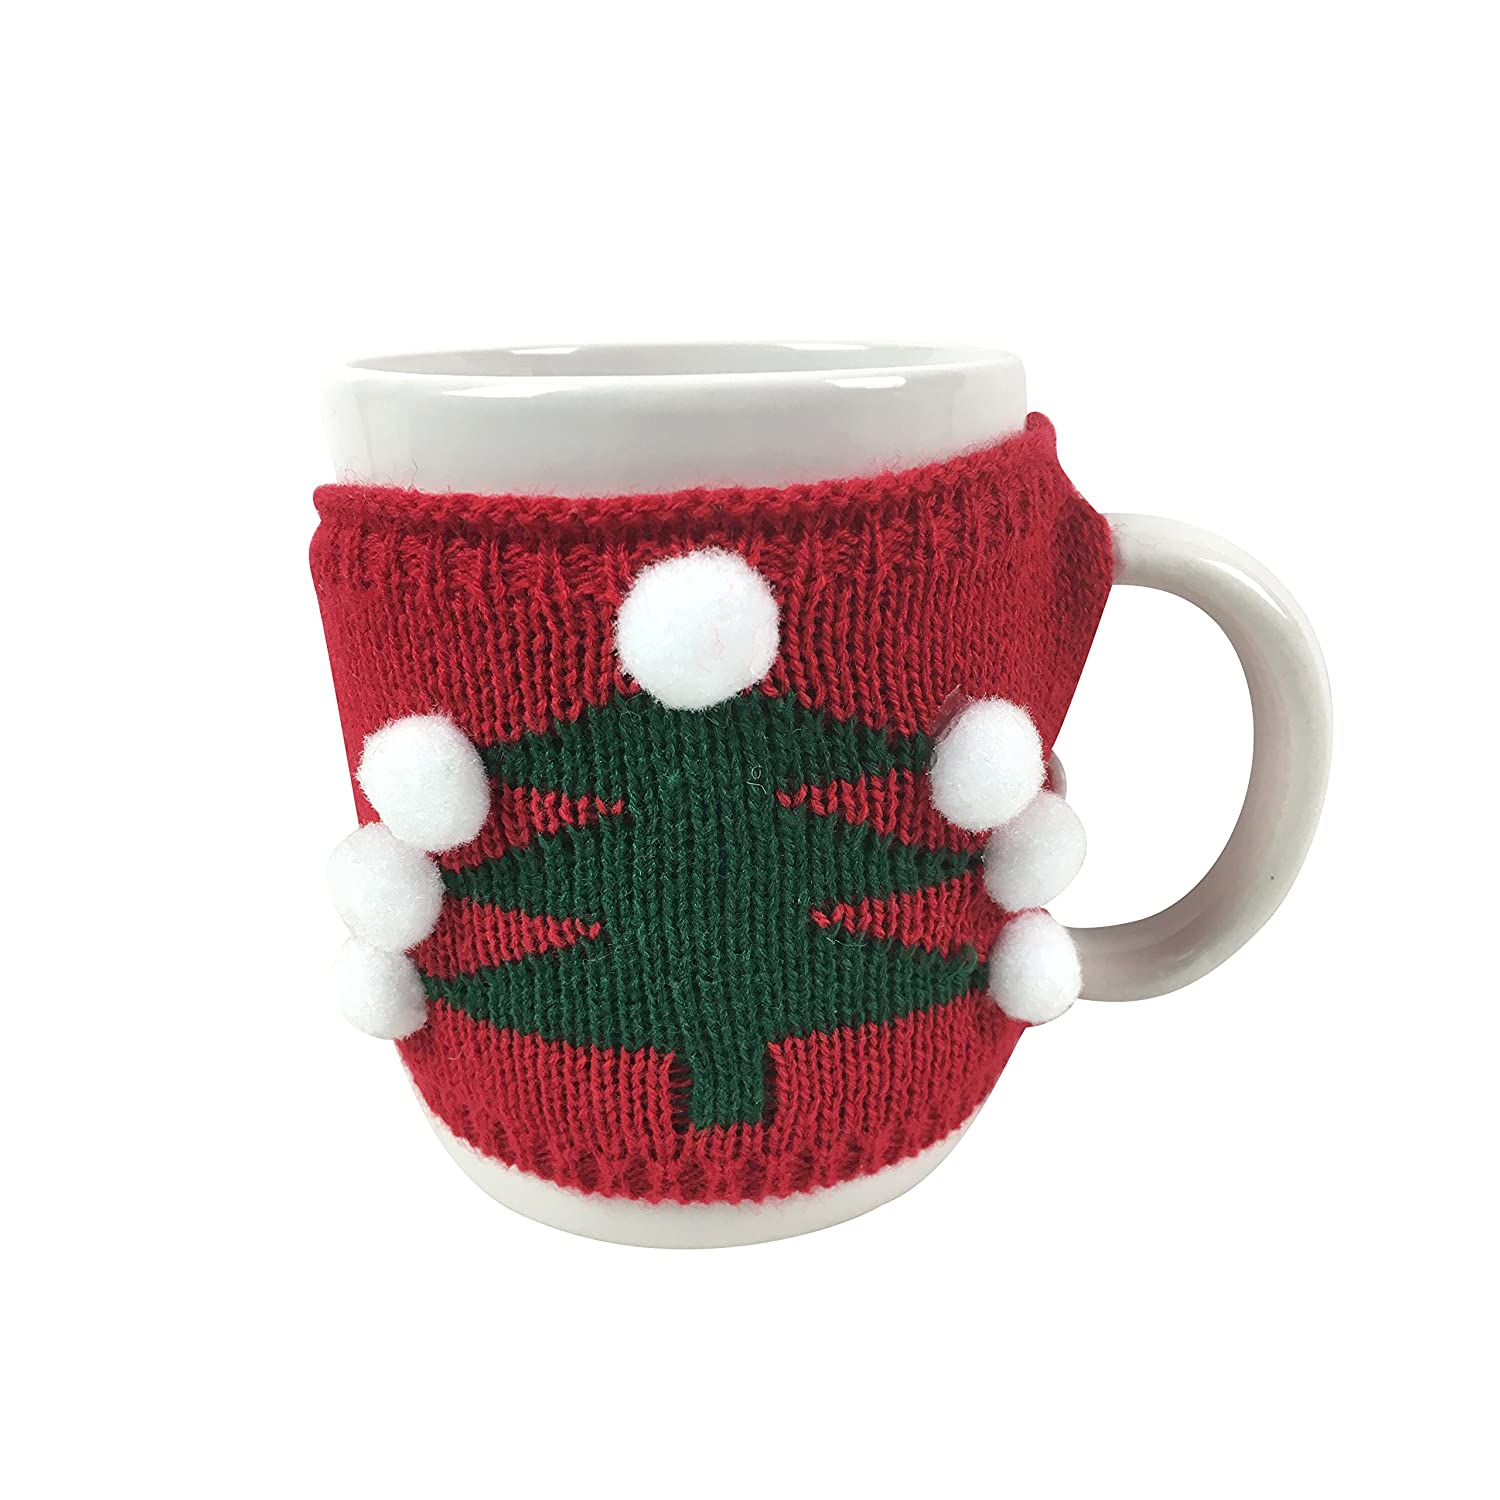 Extra Large Ugly Christmas Sweater Coffee Mug Red and White